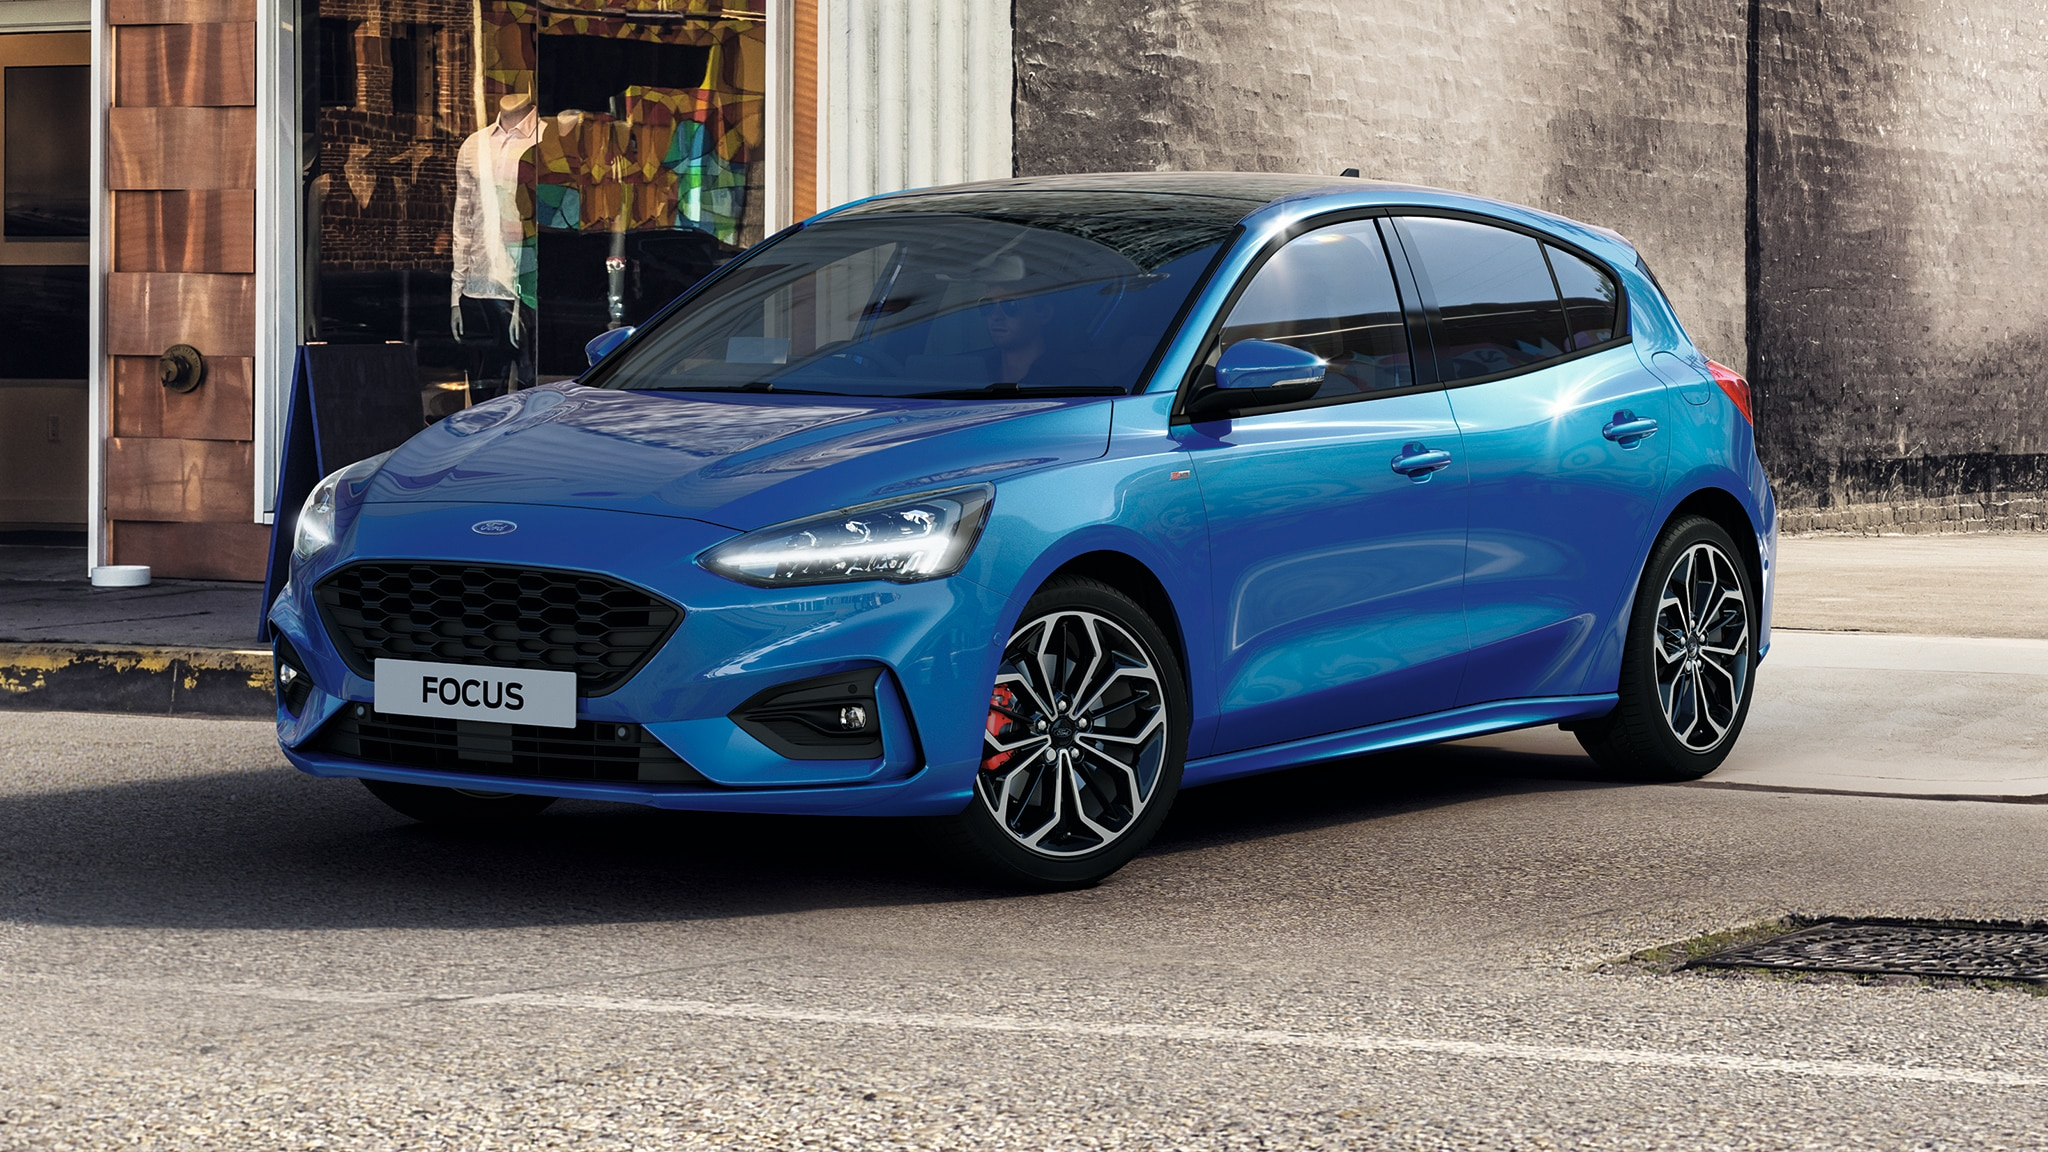 Ford Focus Now Available With Mild-Hybrid Three-Cylinder, But Not Here